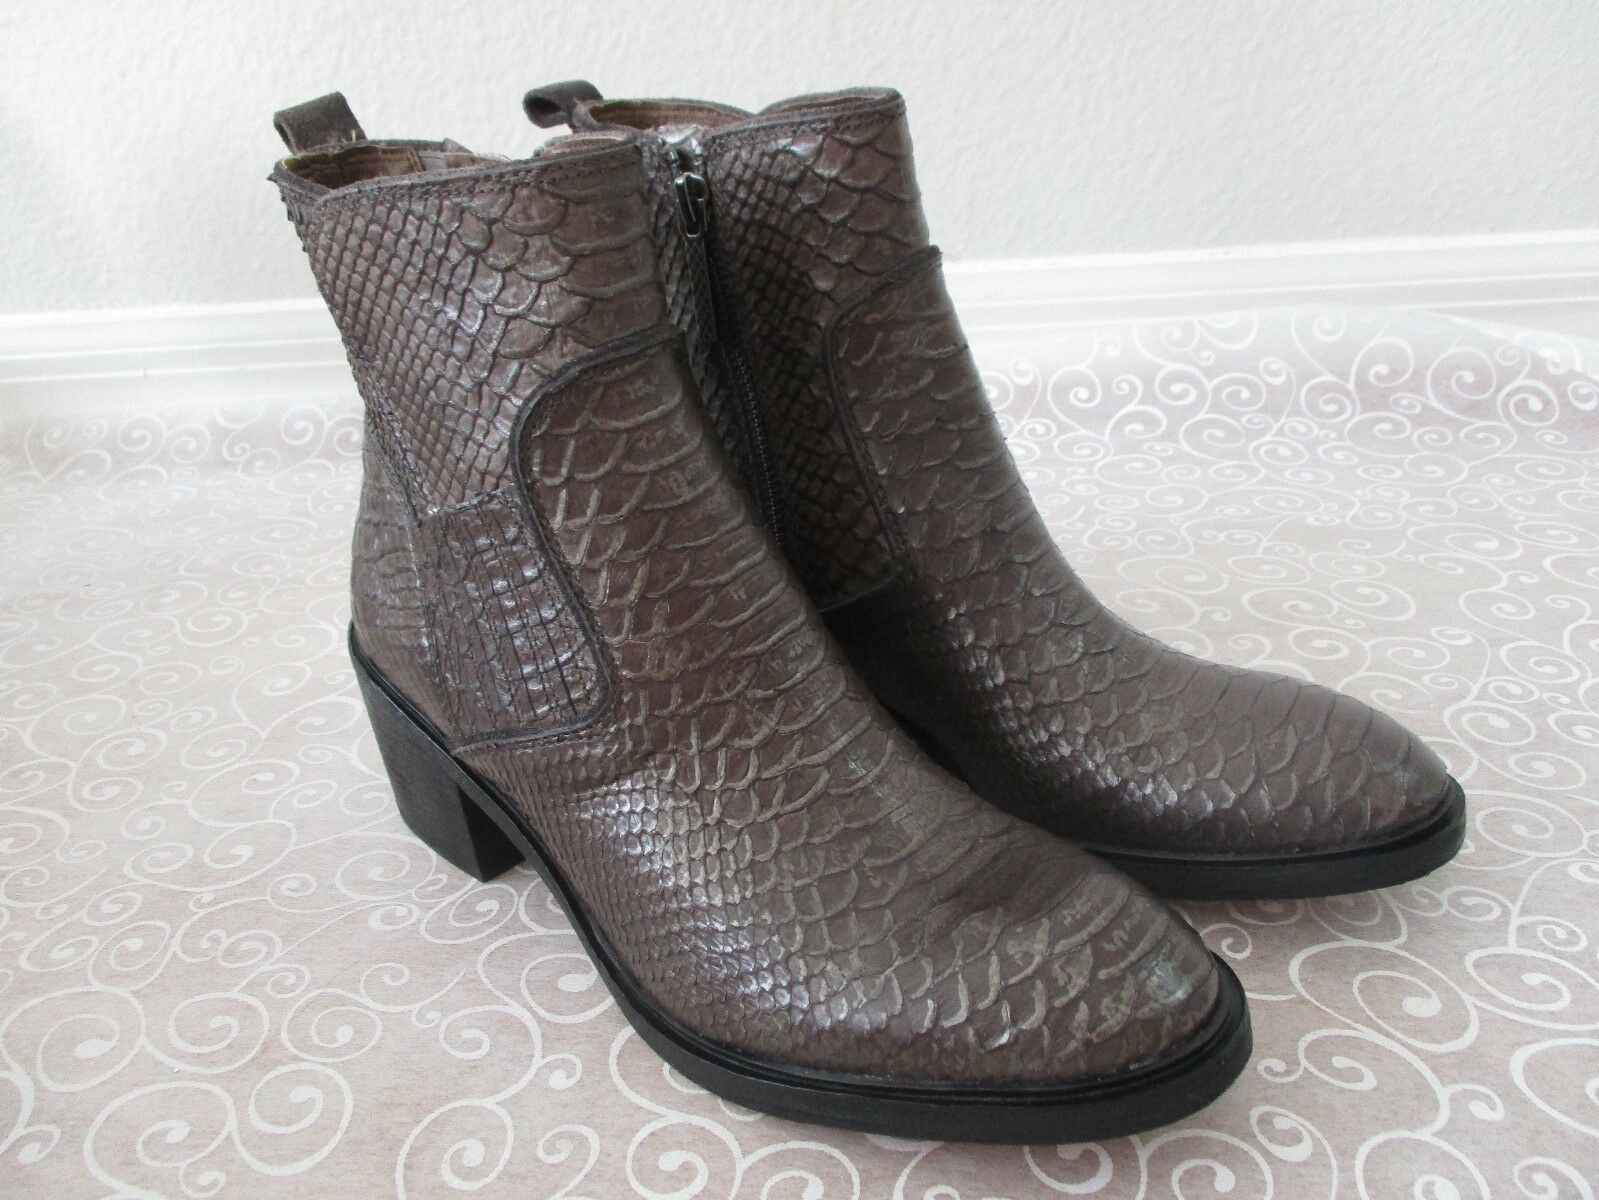 328 DONALD J PLINNER BRONZE SNAKE PRINT LEATHER LEATHER PRINT ANKLE Stiefel SIZE 7 1/2 M -  NEW 6953fb